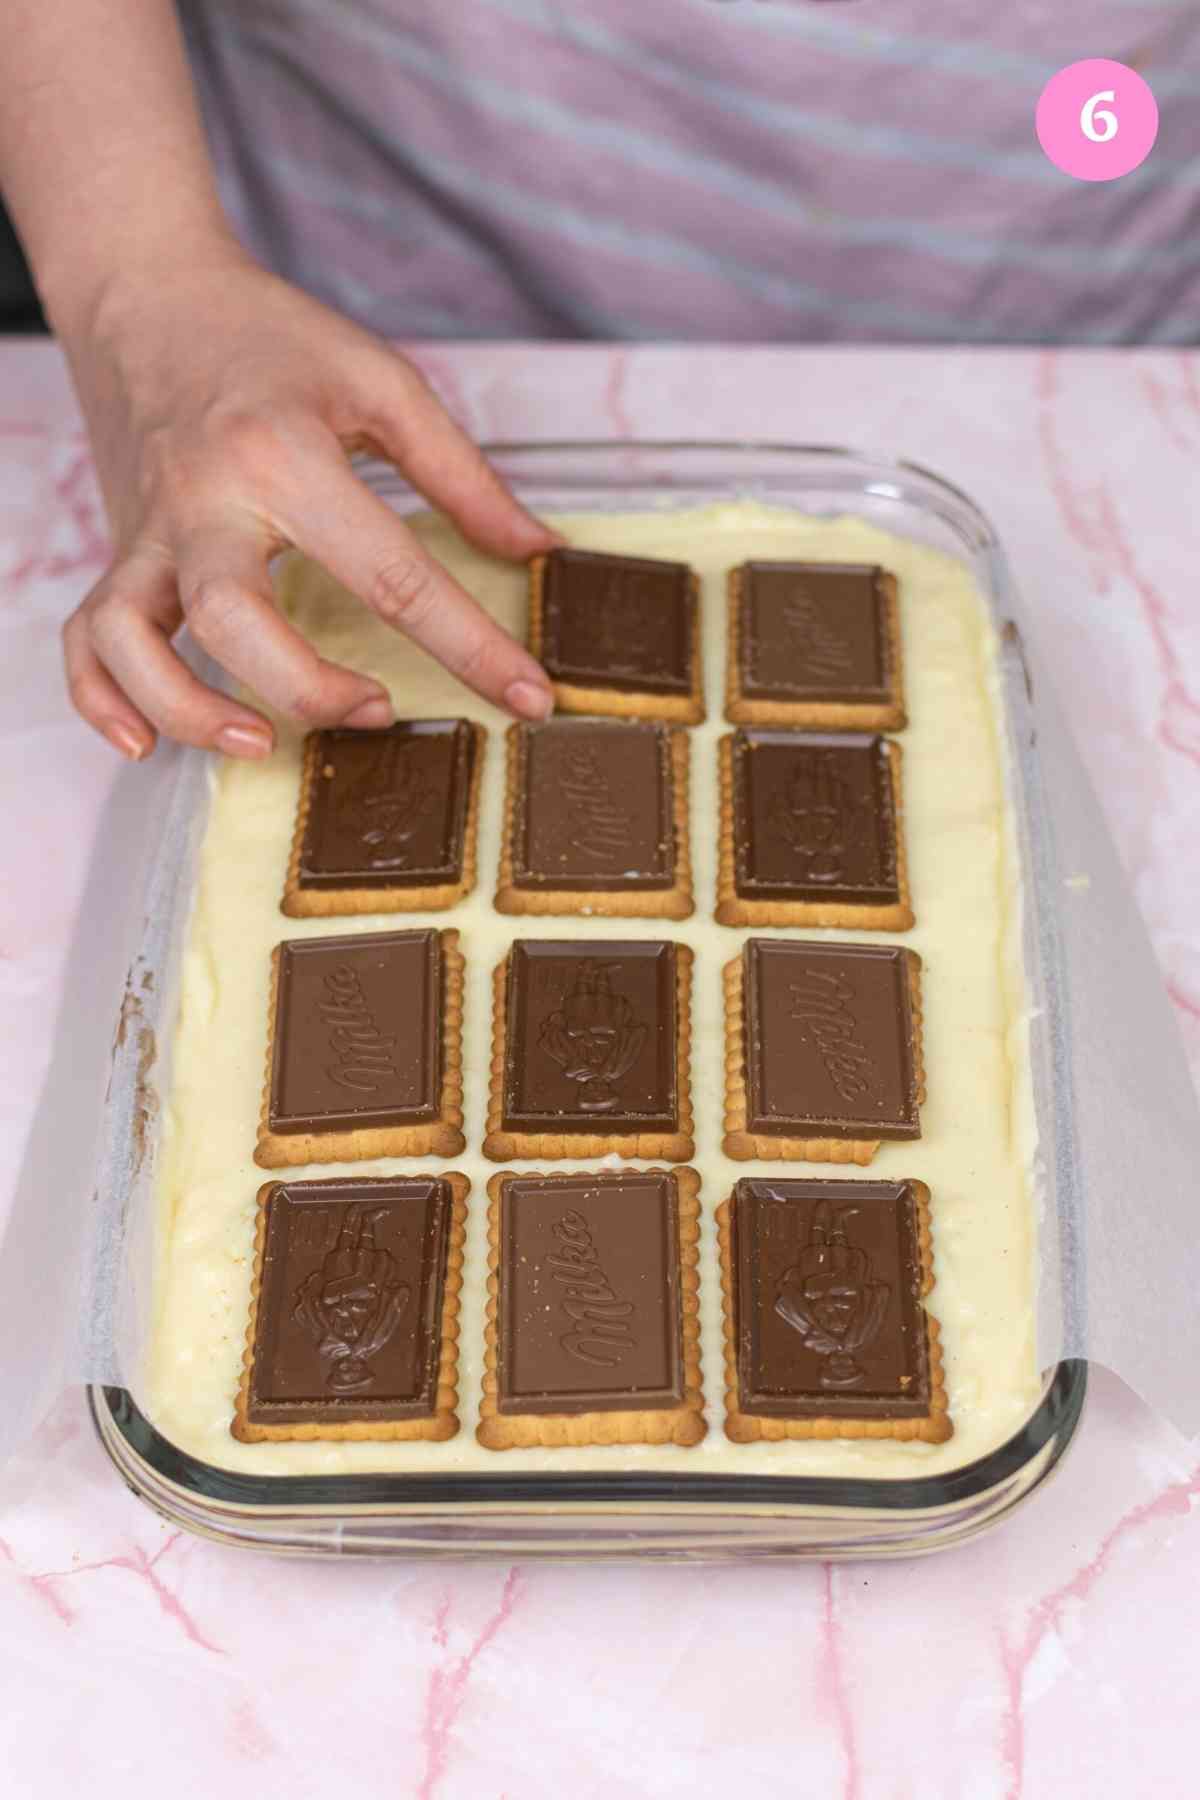 Adding the top layer of chocolate covered biscuits over the vanilla custard layer